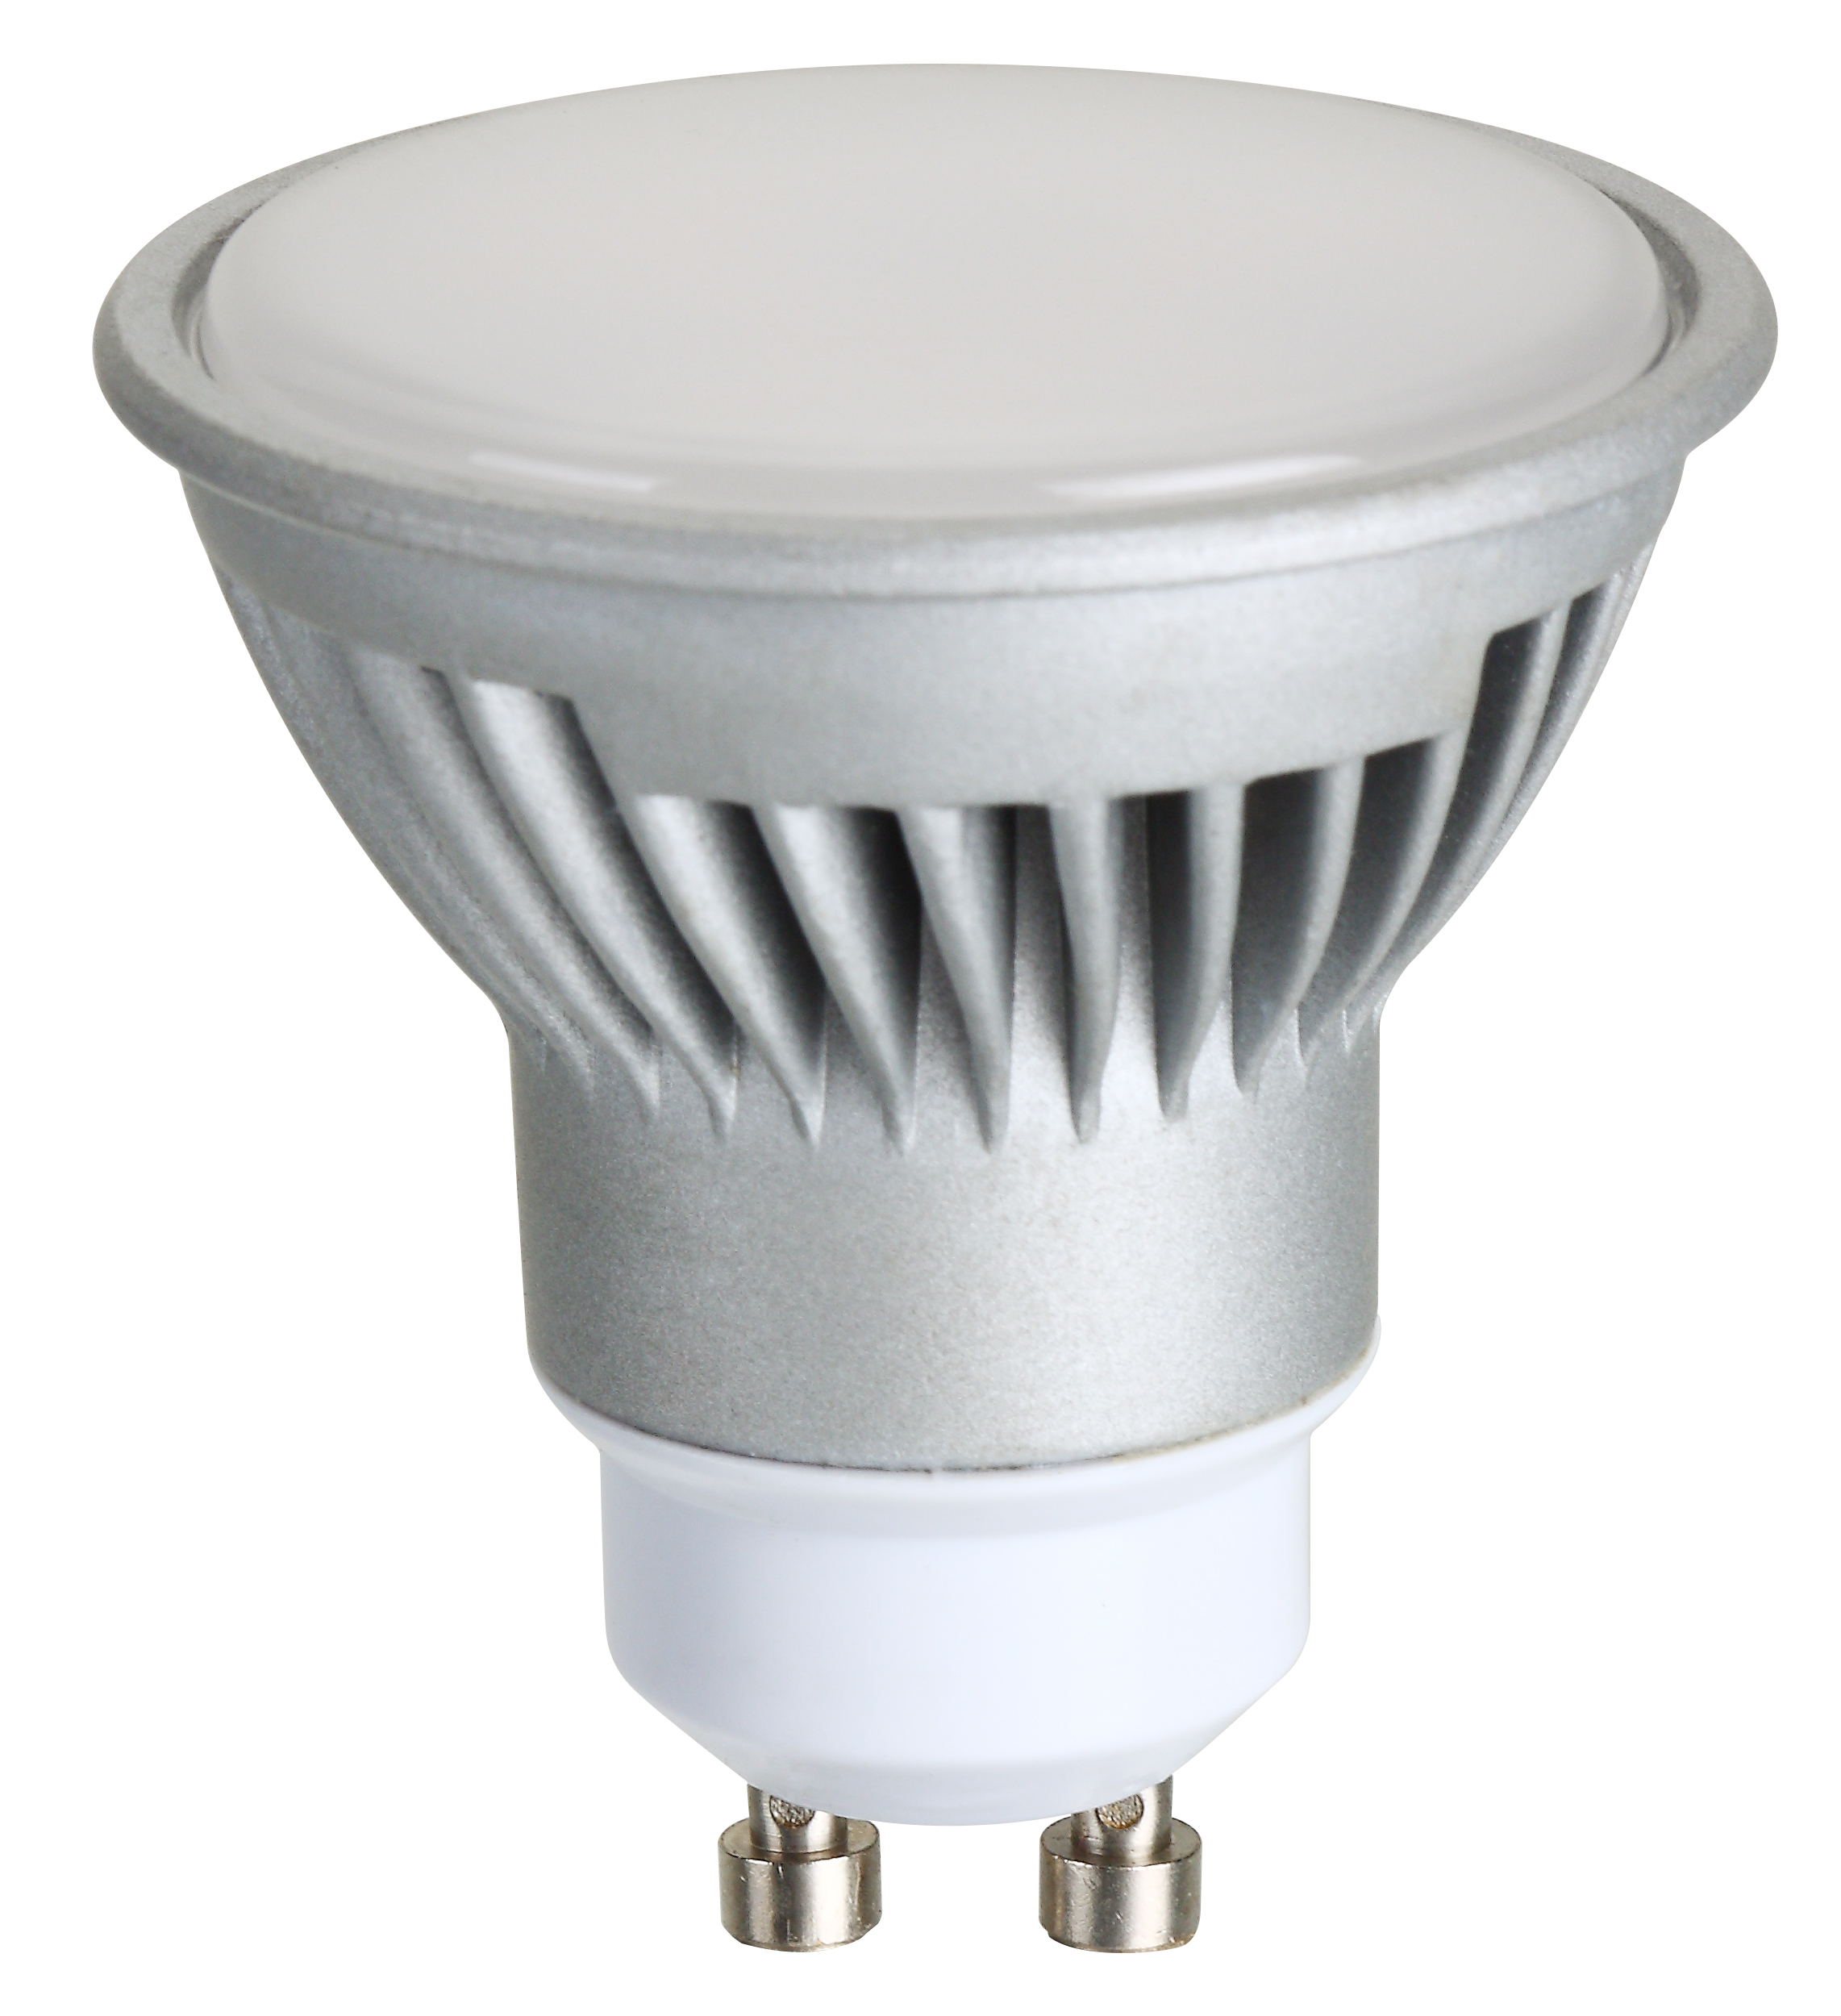 7.5W 650lm GU10 LED Spotlight